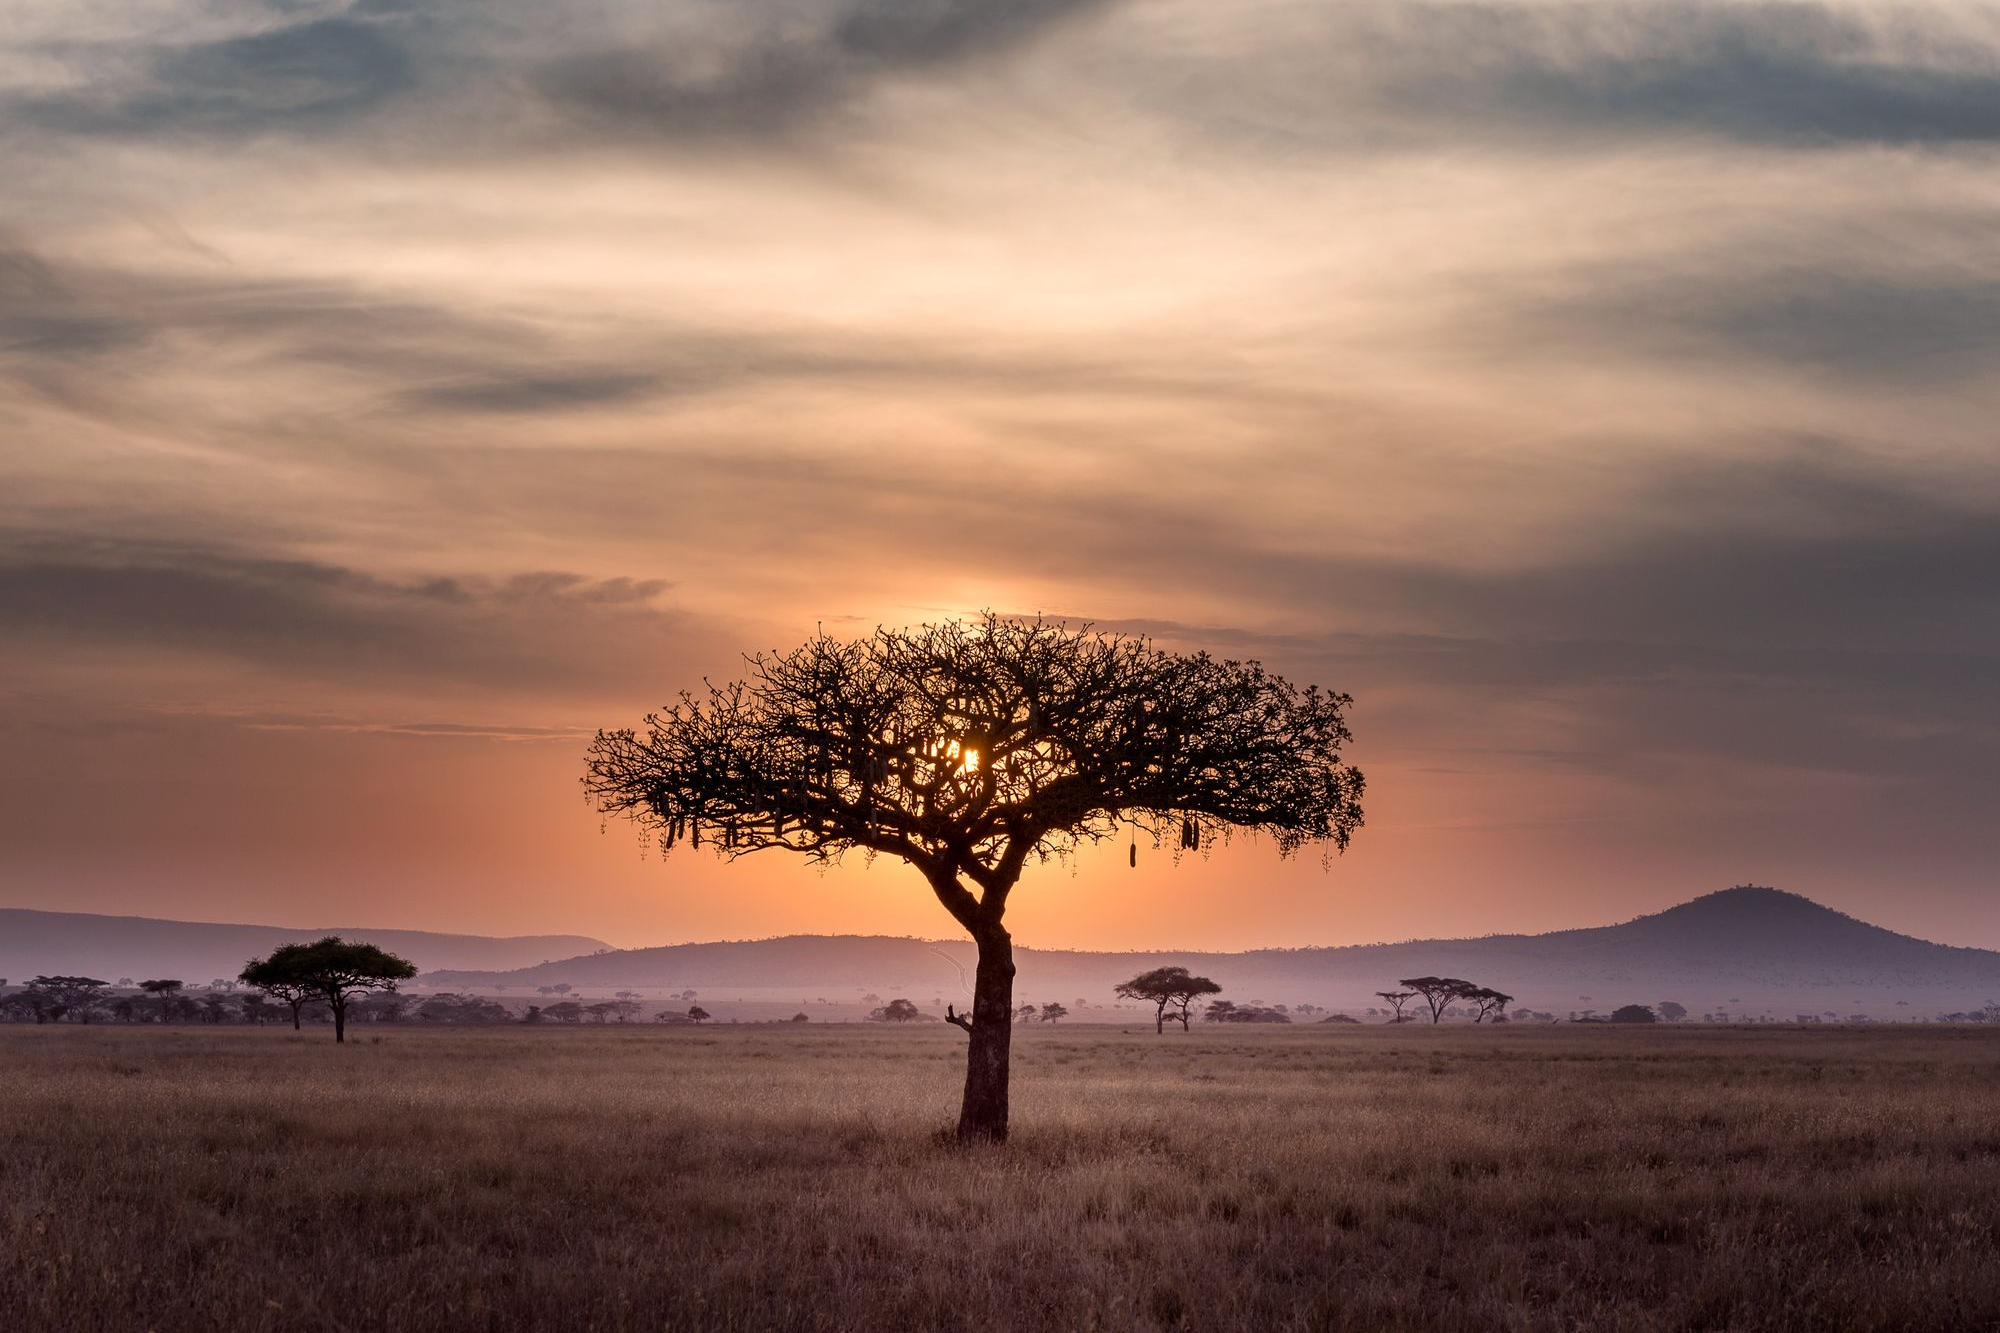 A tree in a green African land